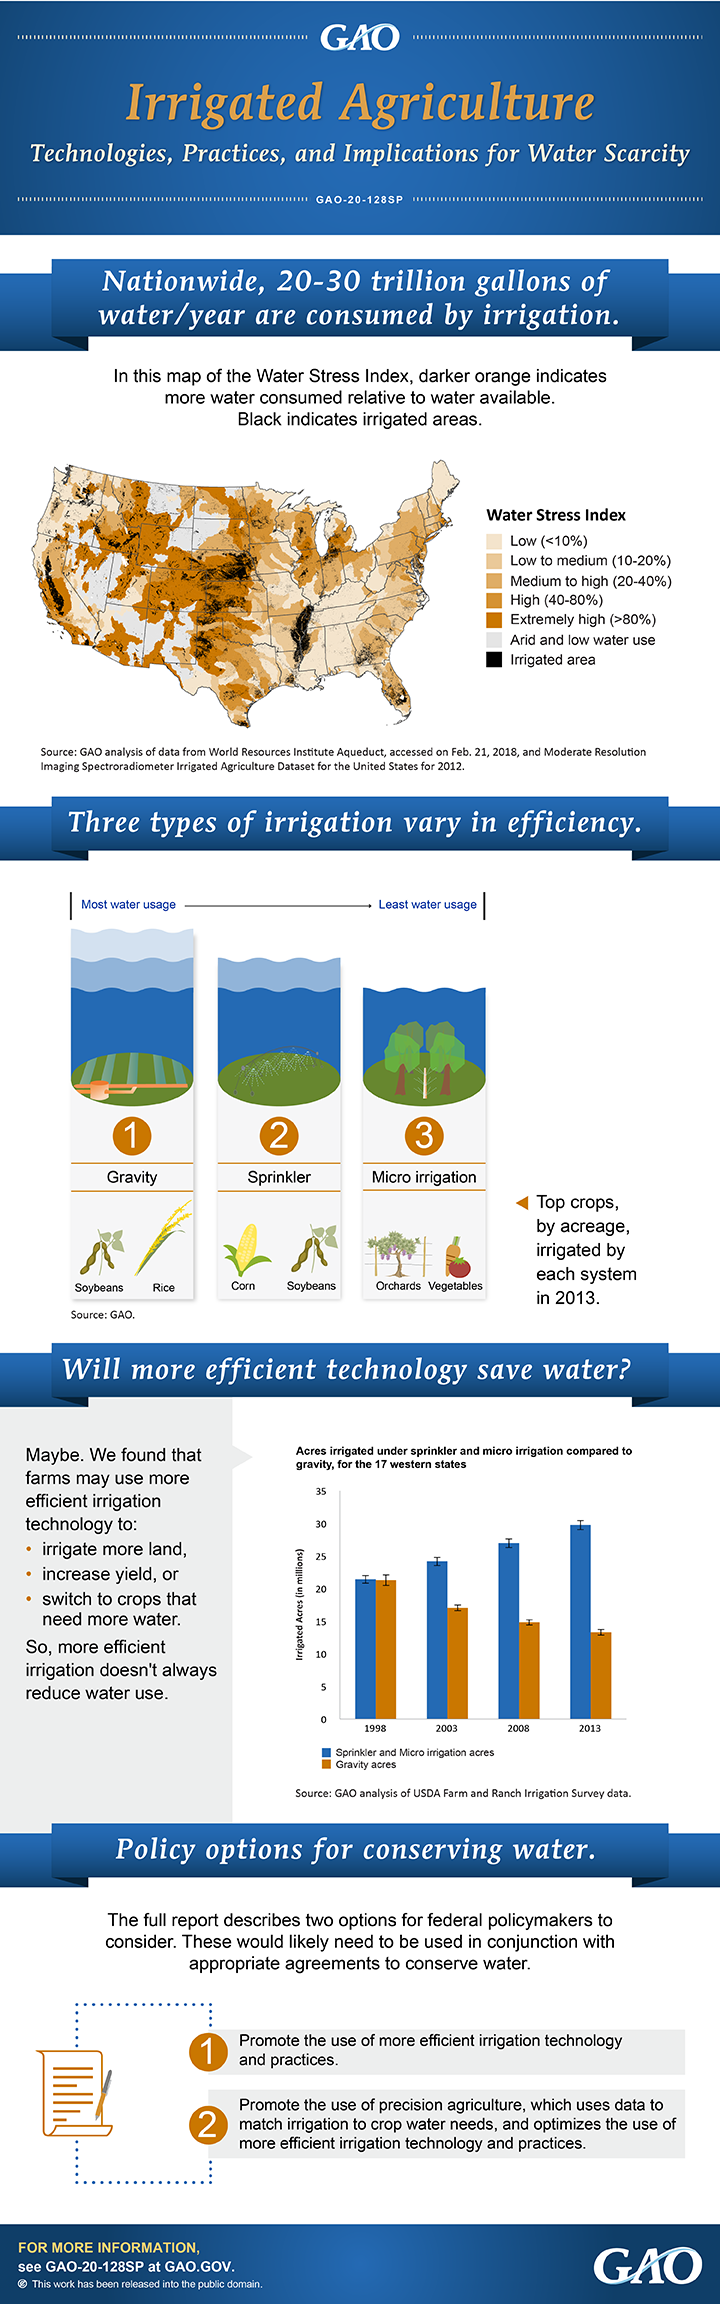 Infographic: Irrigated Agriculture: Technologies, Practices, and Implications for Water Scarcity